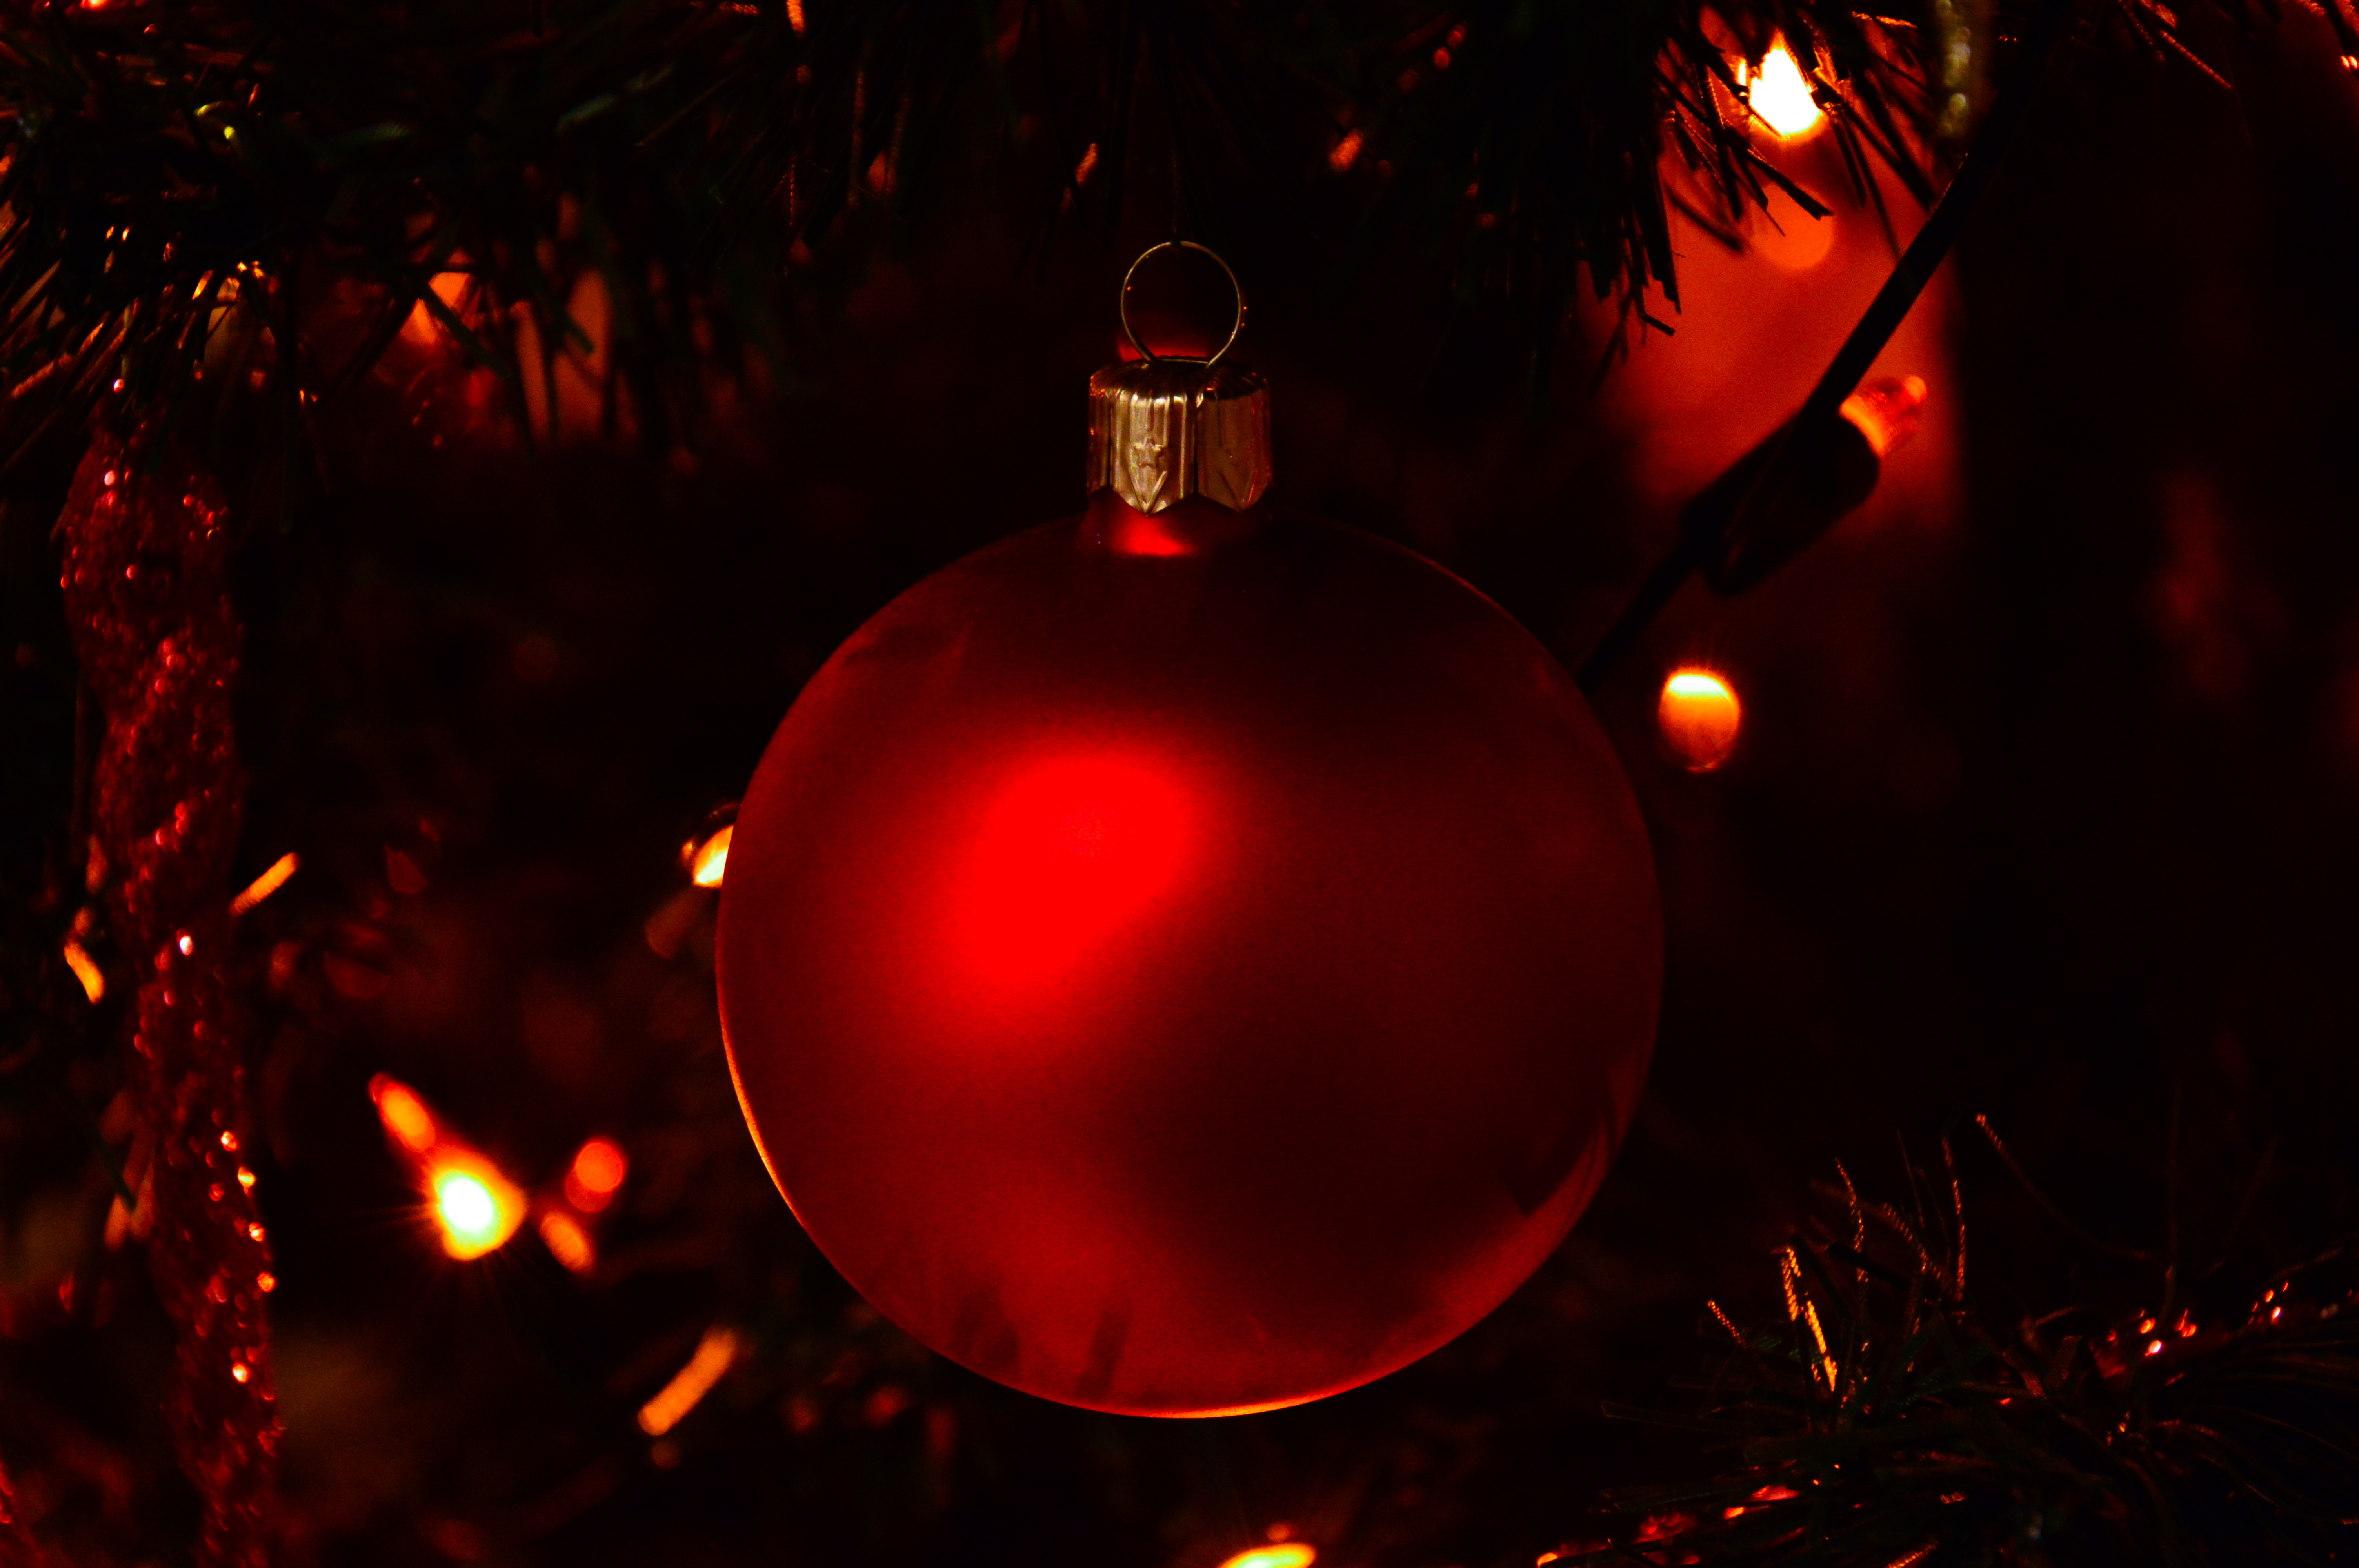 free download - Red Christmas Tree Lights